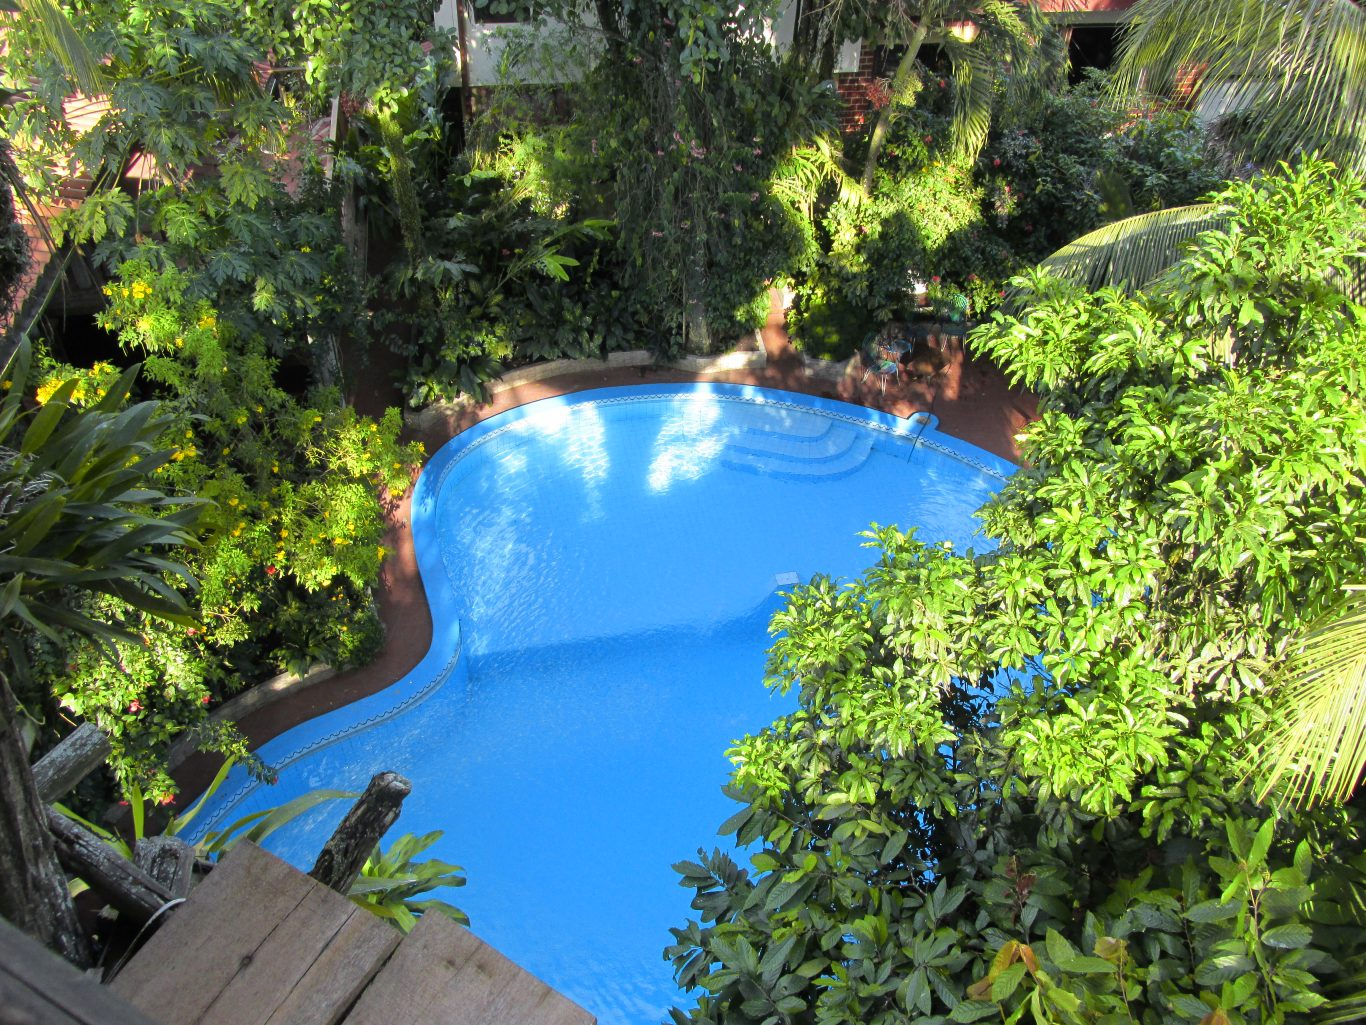 Swimming pool at La Casa Fitzcarraldo in Iquitos